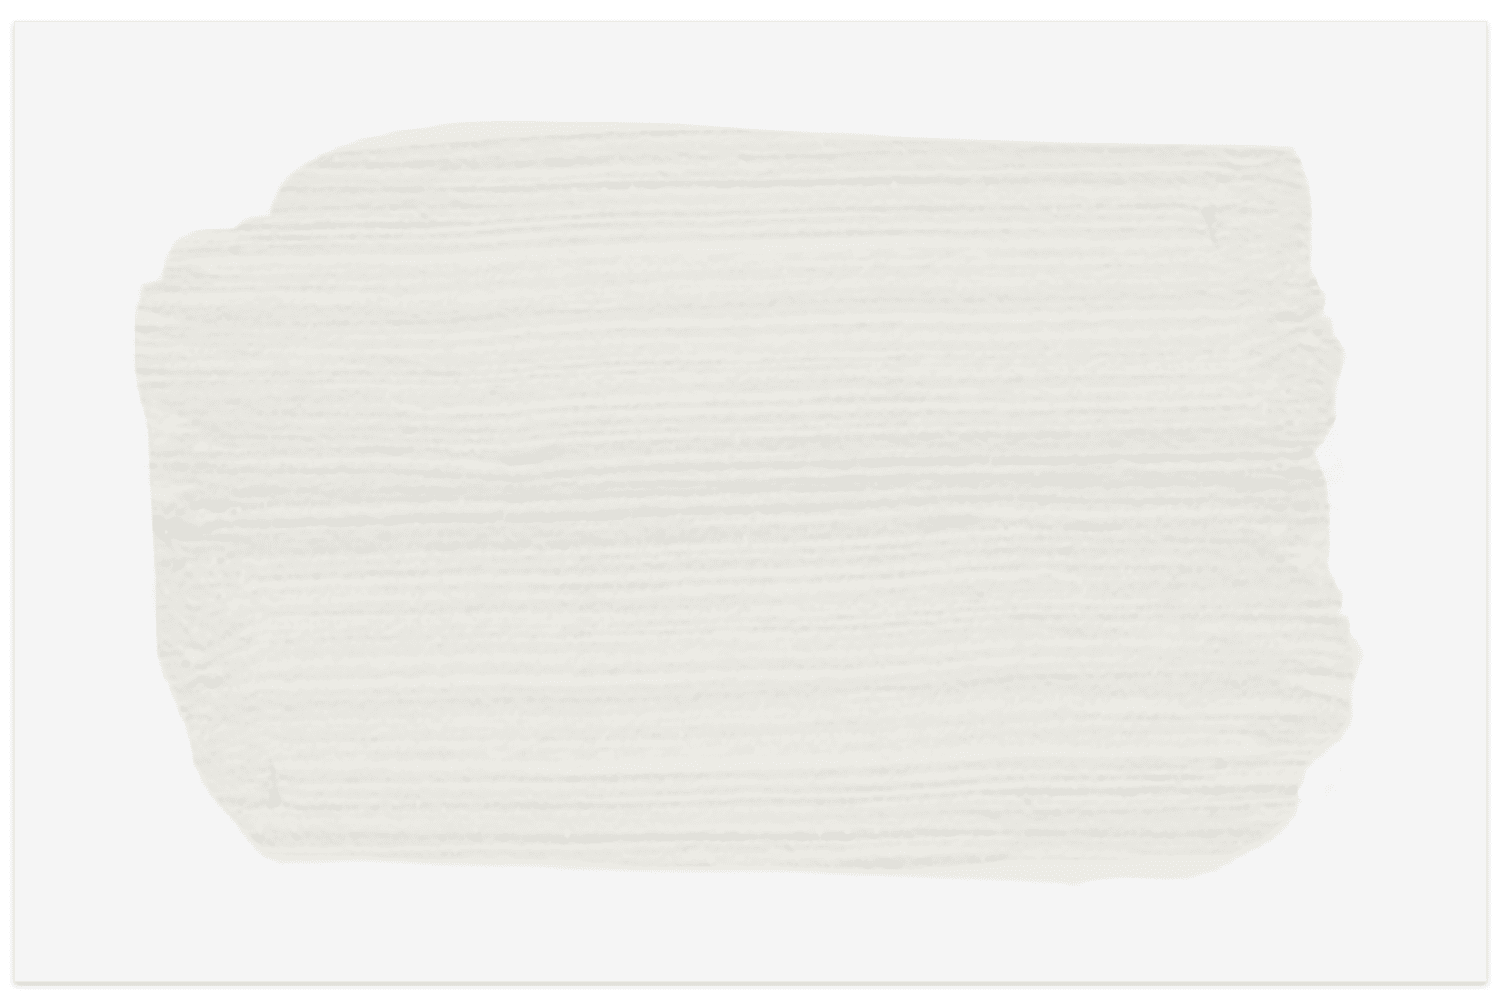 Sherwin-Williams Pure White swatch